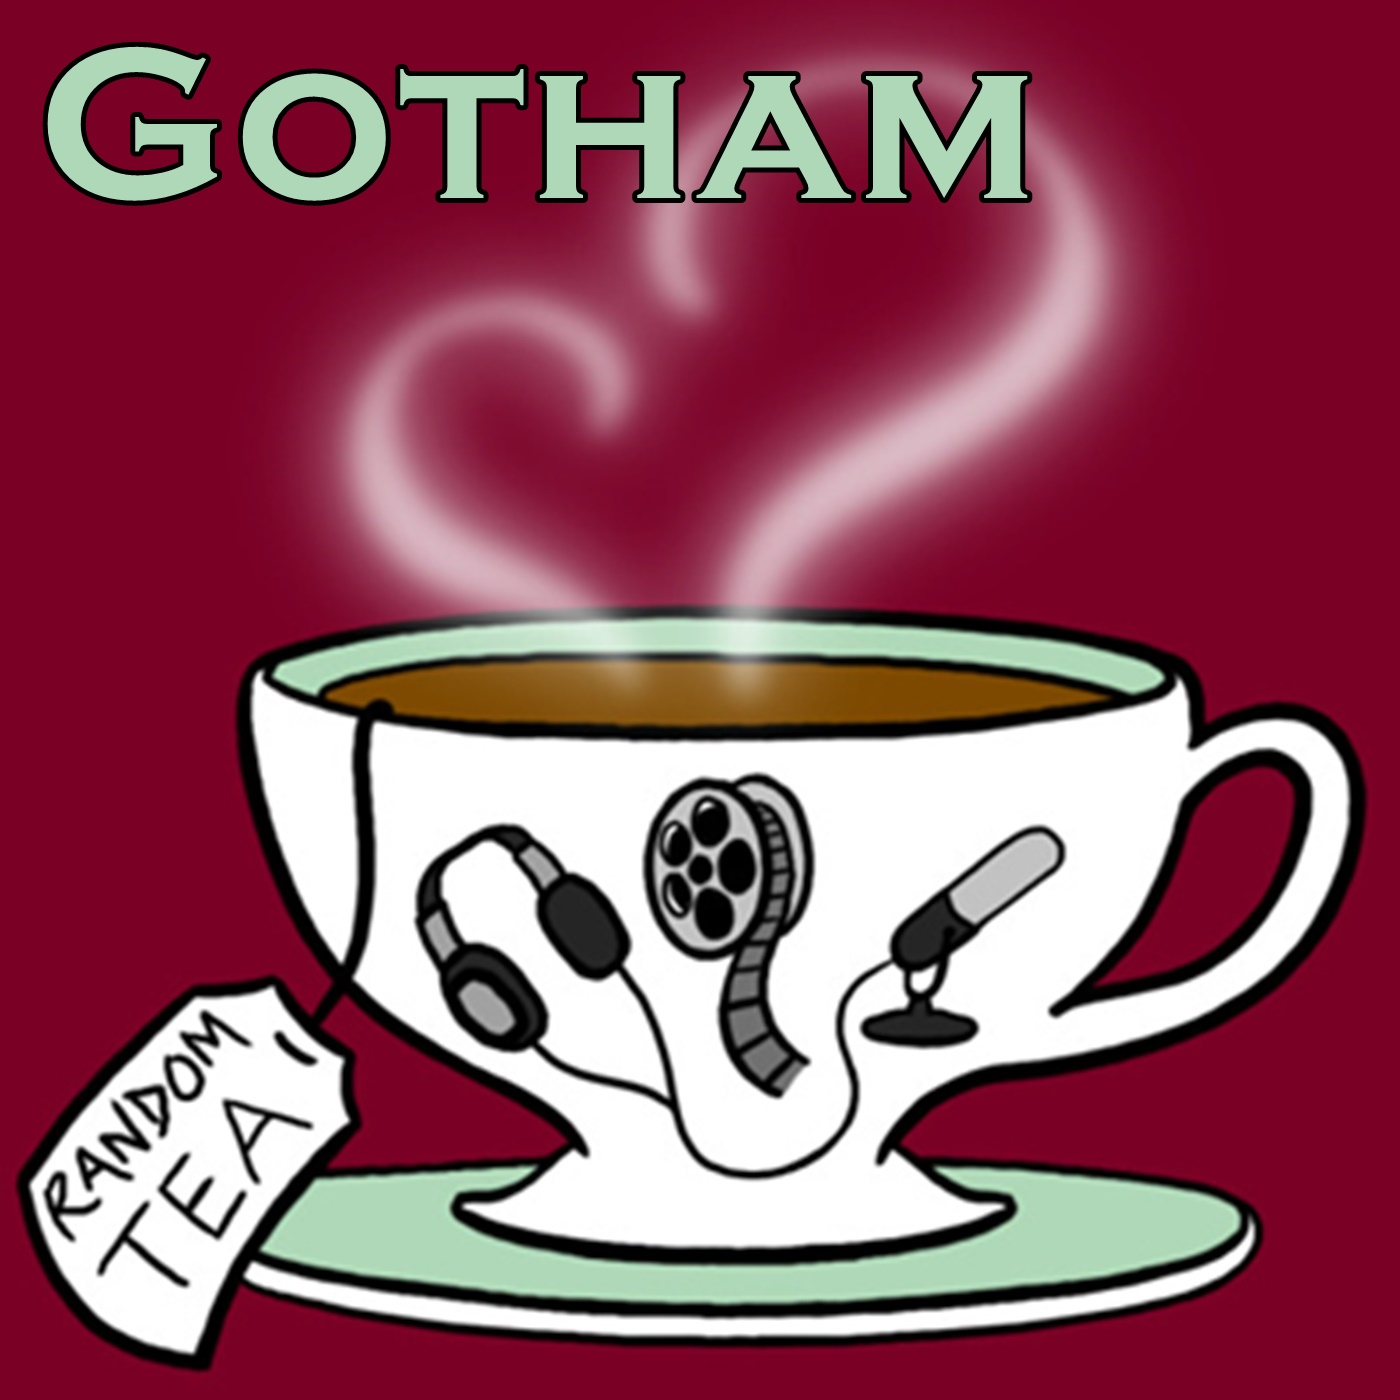 Gotham - Random Tea Podcasts